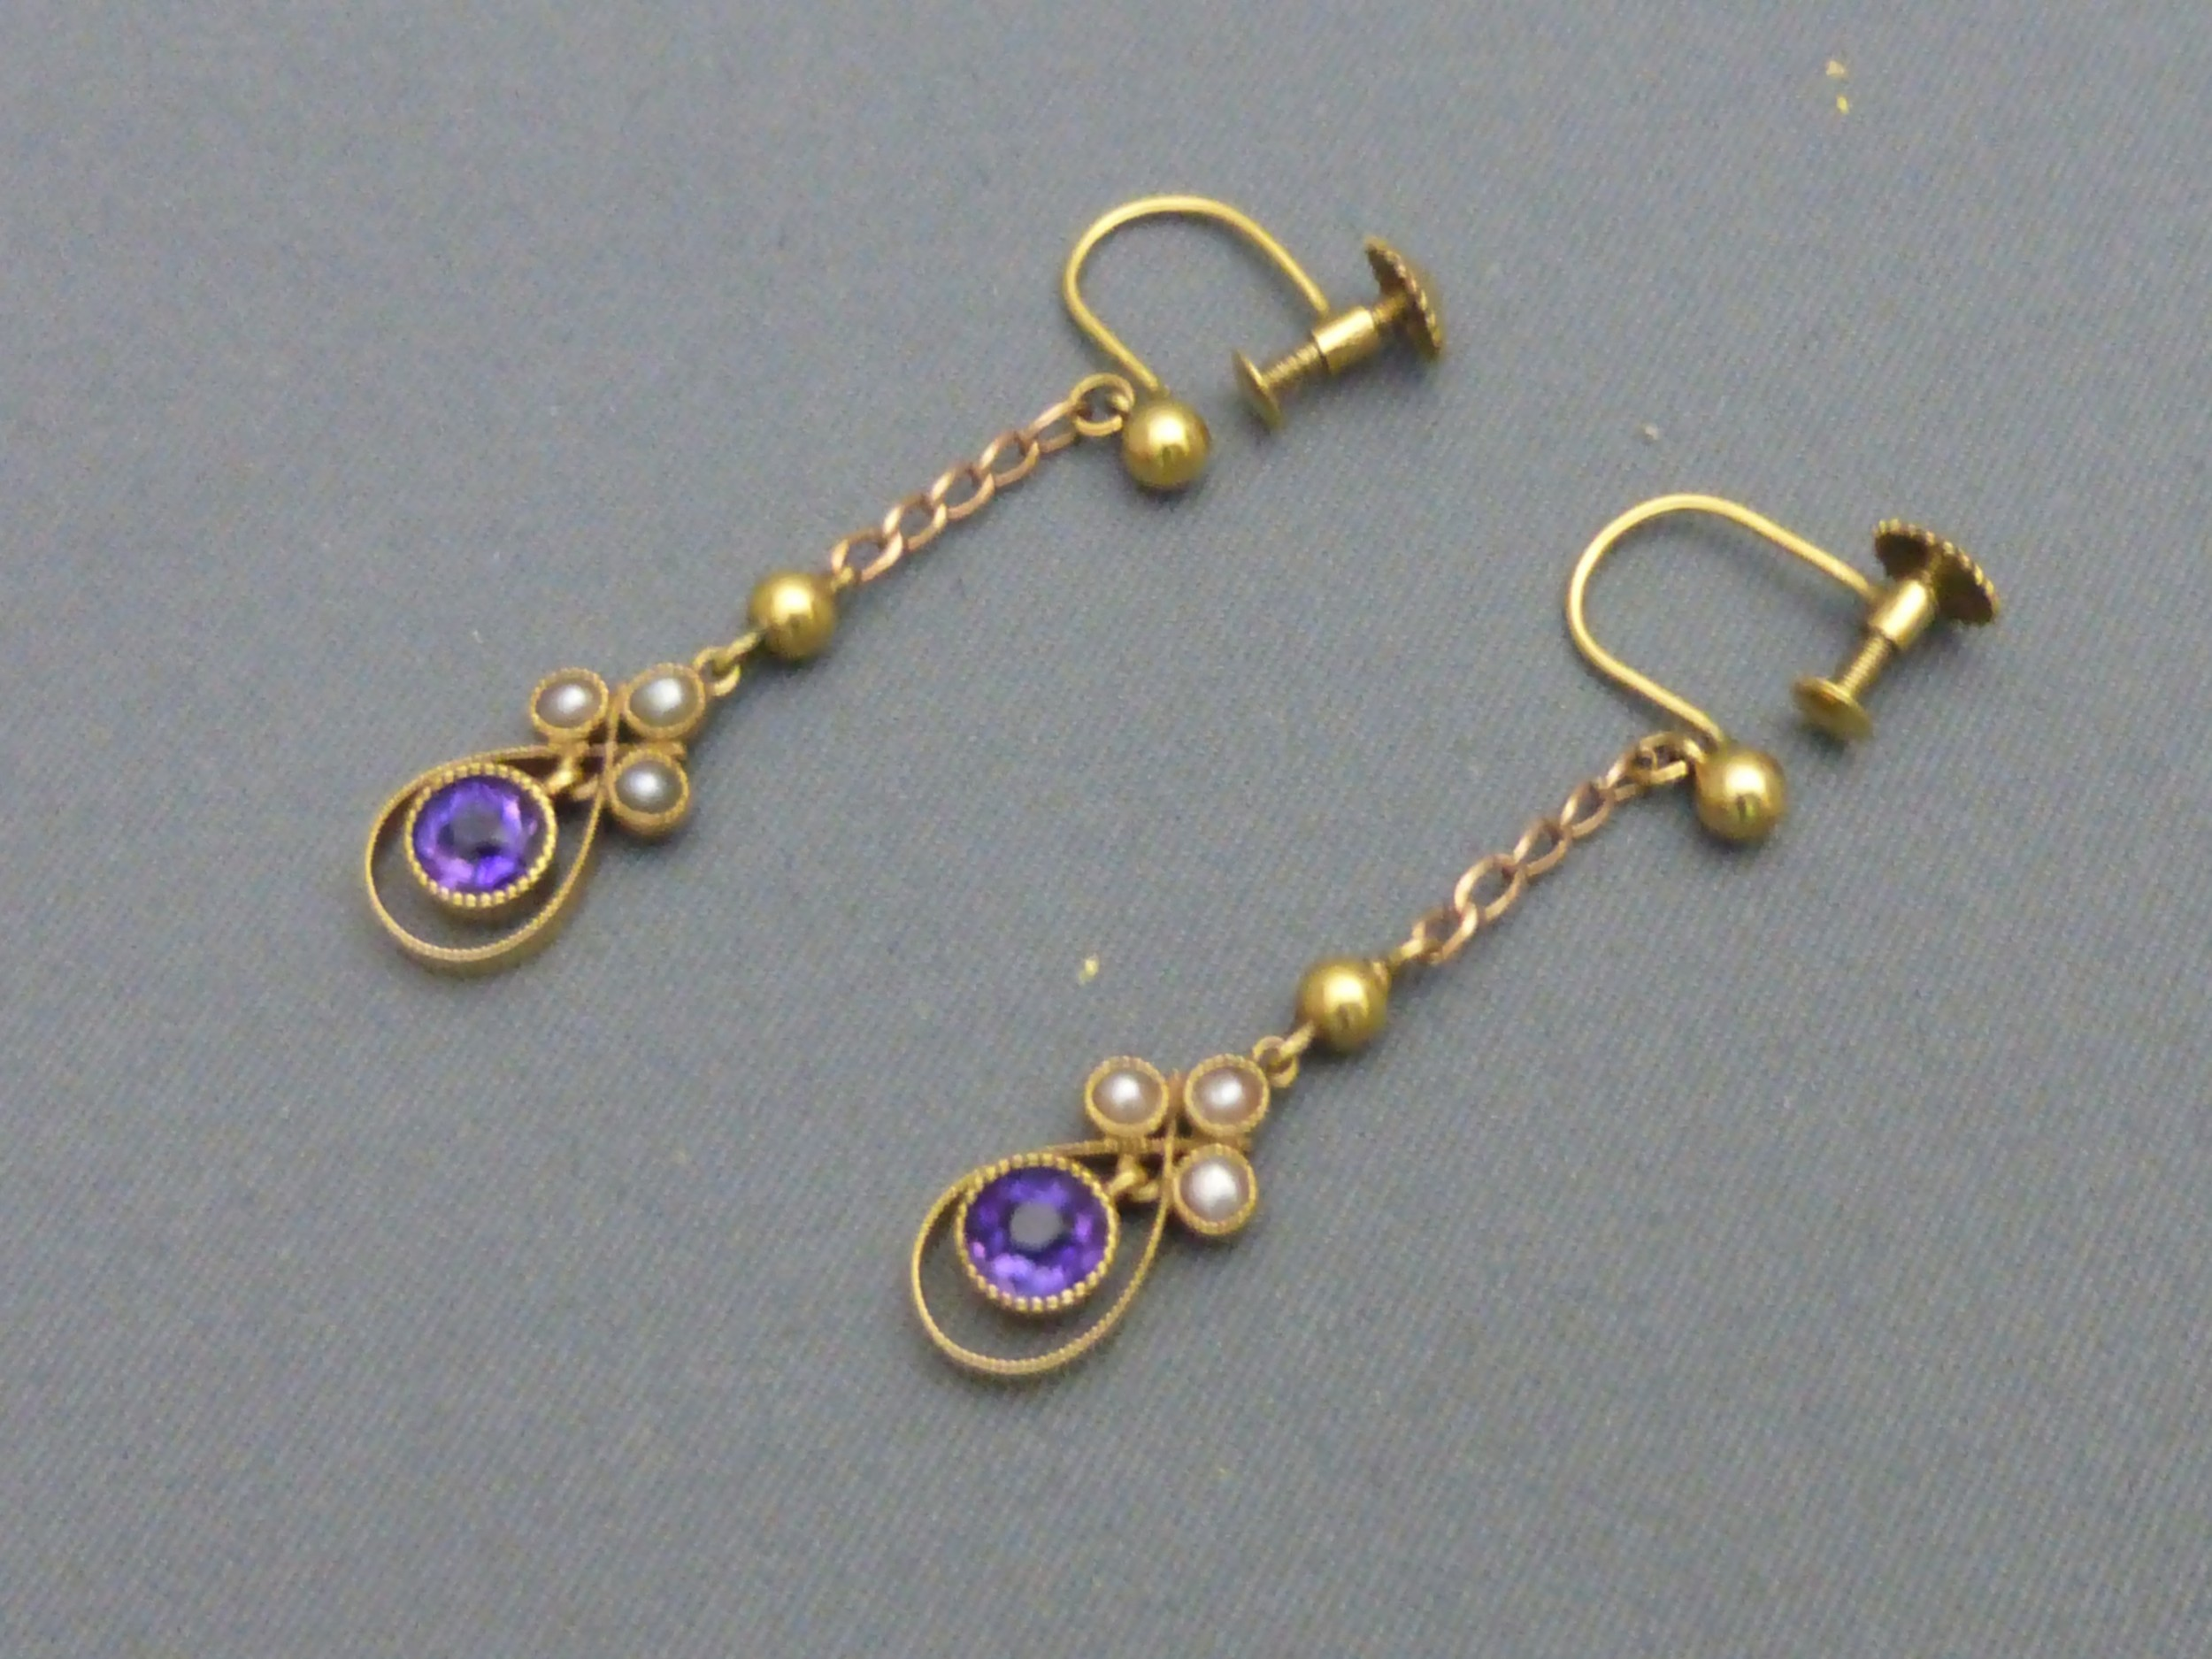 a pair of edwardian 9ct goldamethyst and seed pearl screw earrings